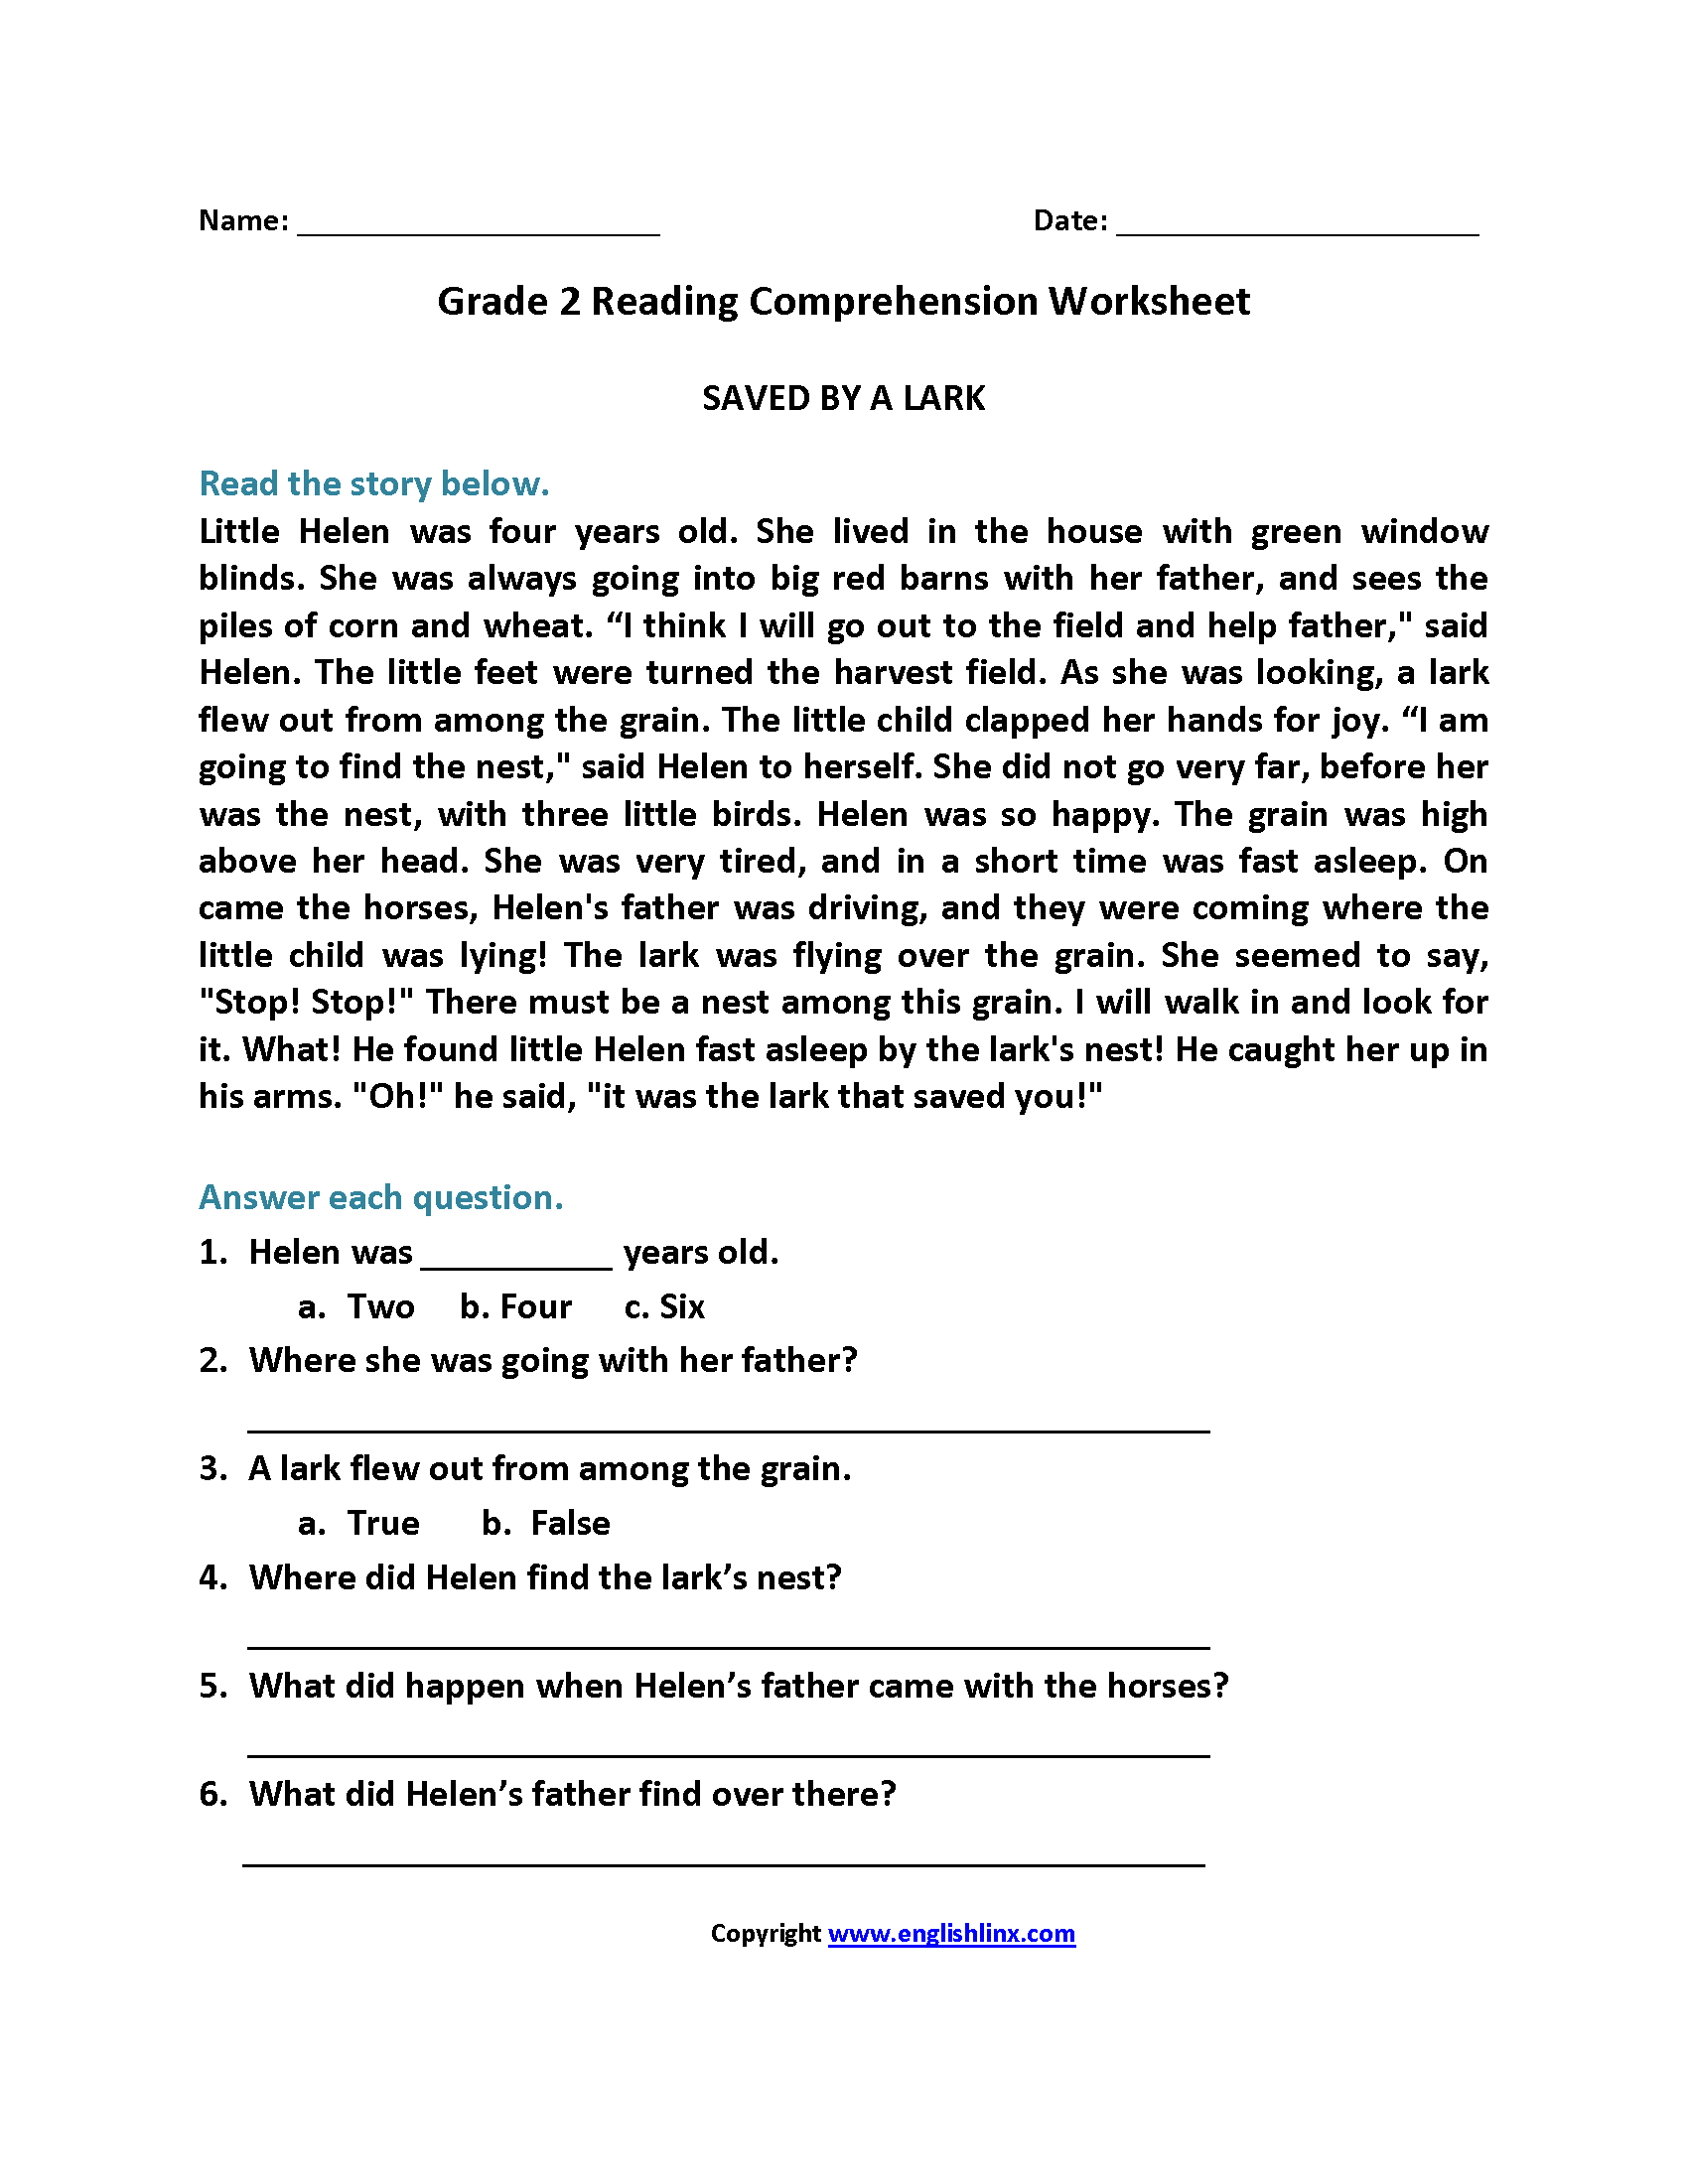 Saved By Lark Second Grade Reading Worksheets 2nd Grade Reading Worksheets Reading Comprehension Worksheets Comprehension Worksheets